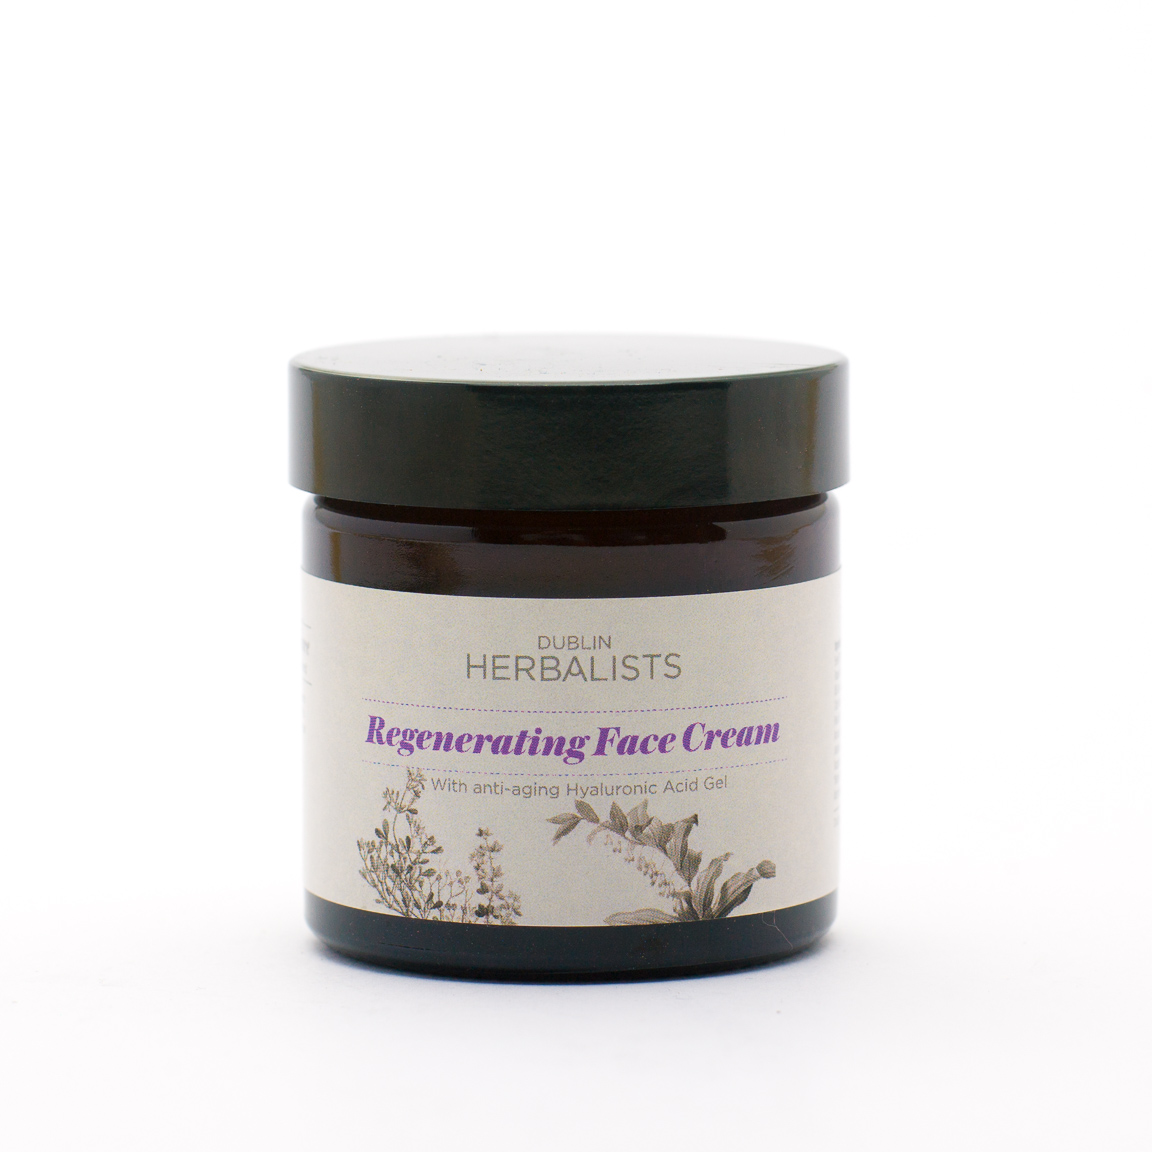 Regenerating Face Cream